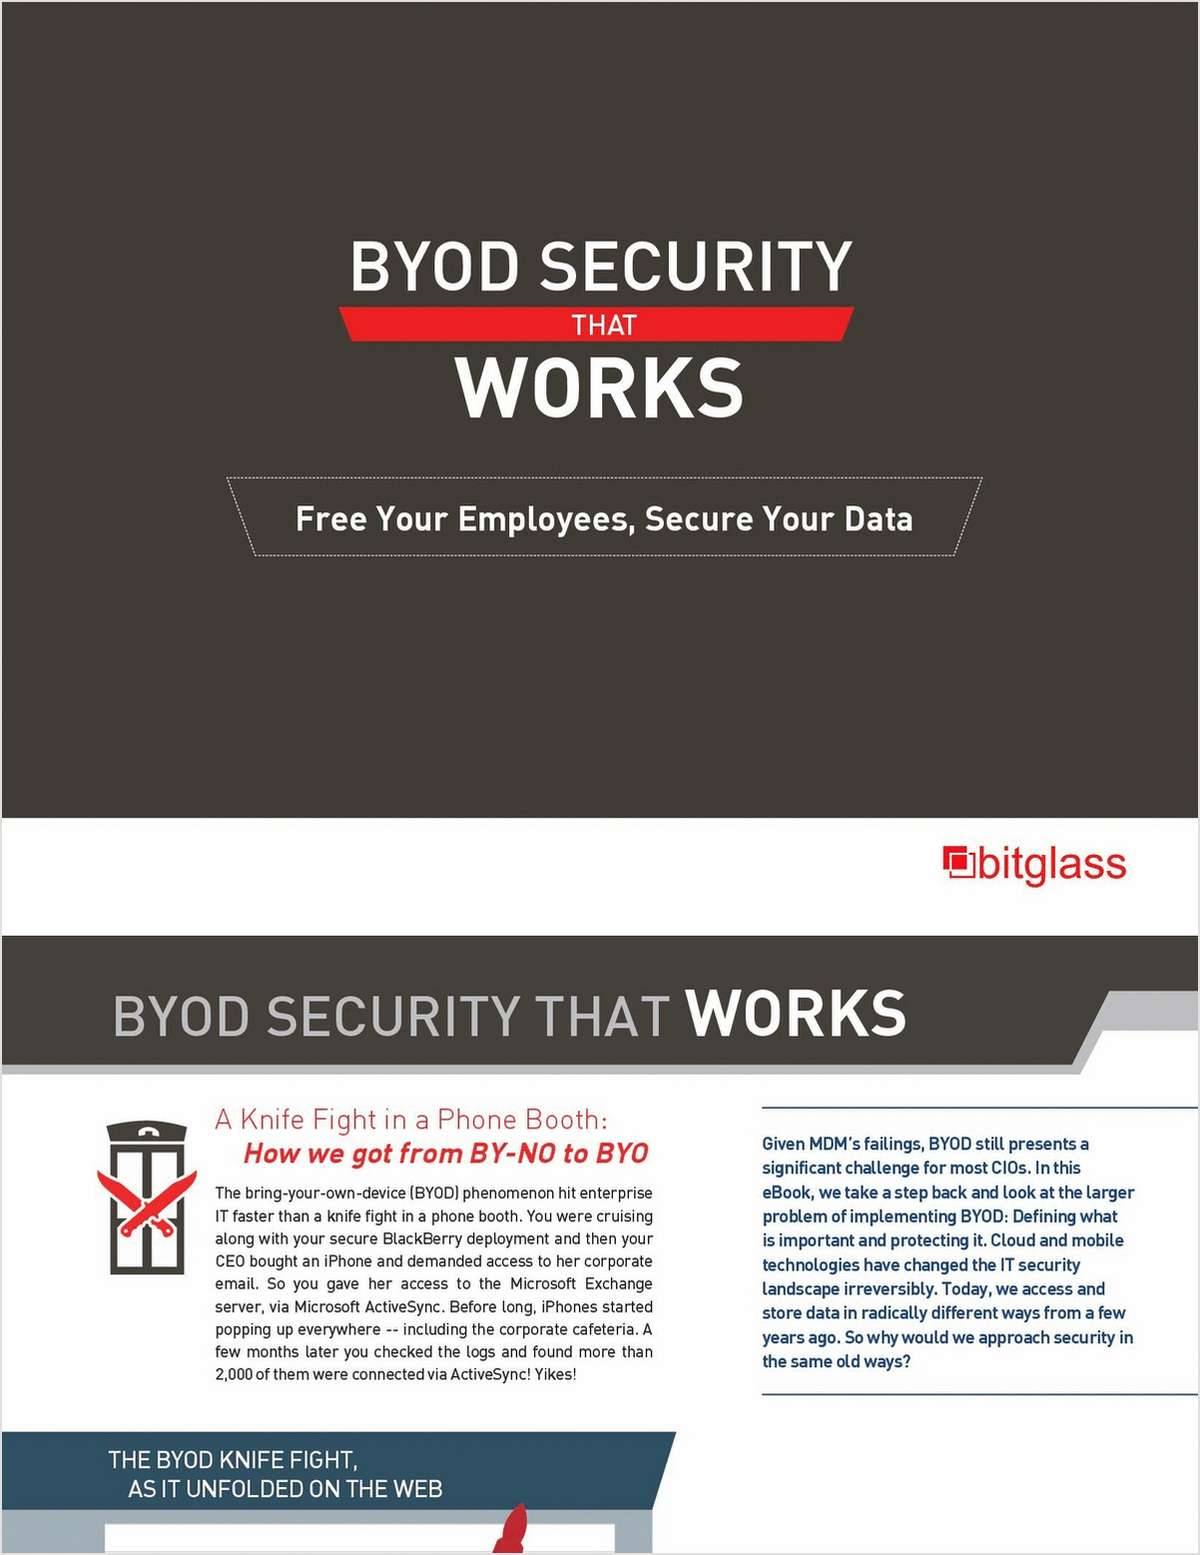 BYOD Security That Works